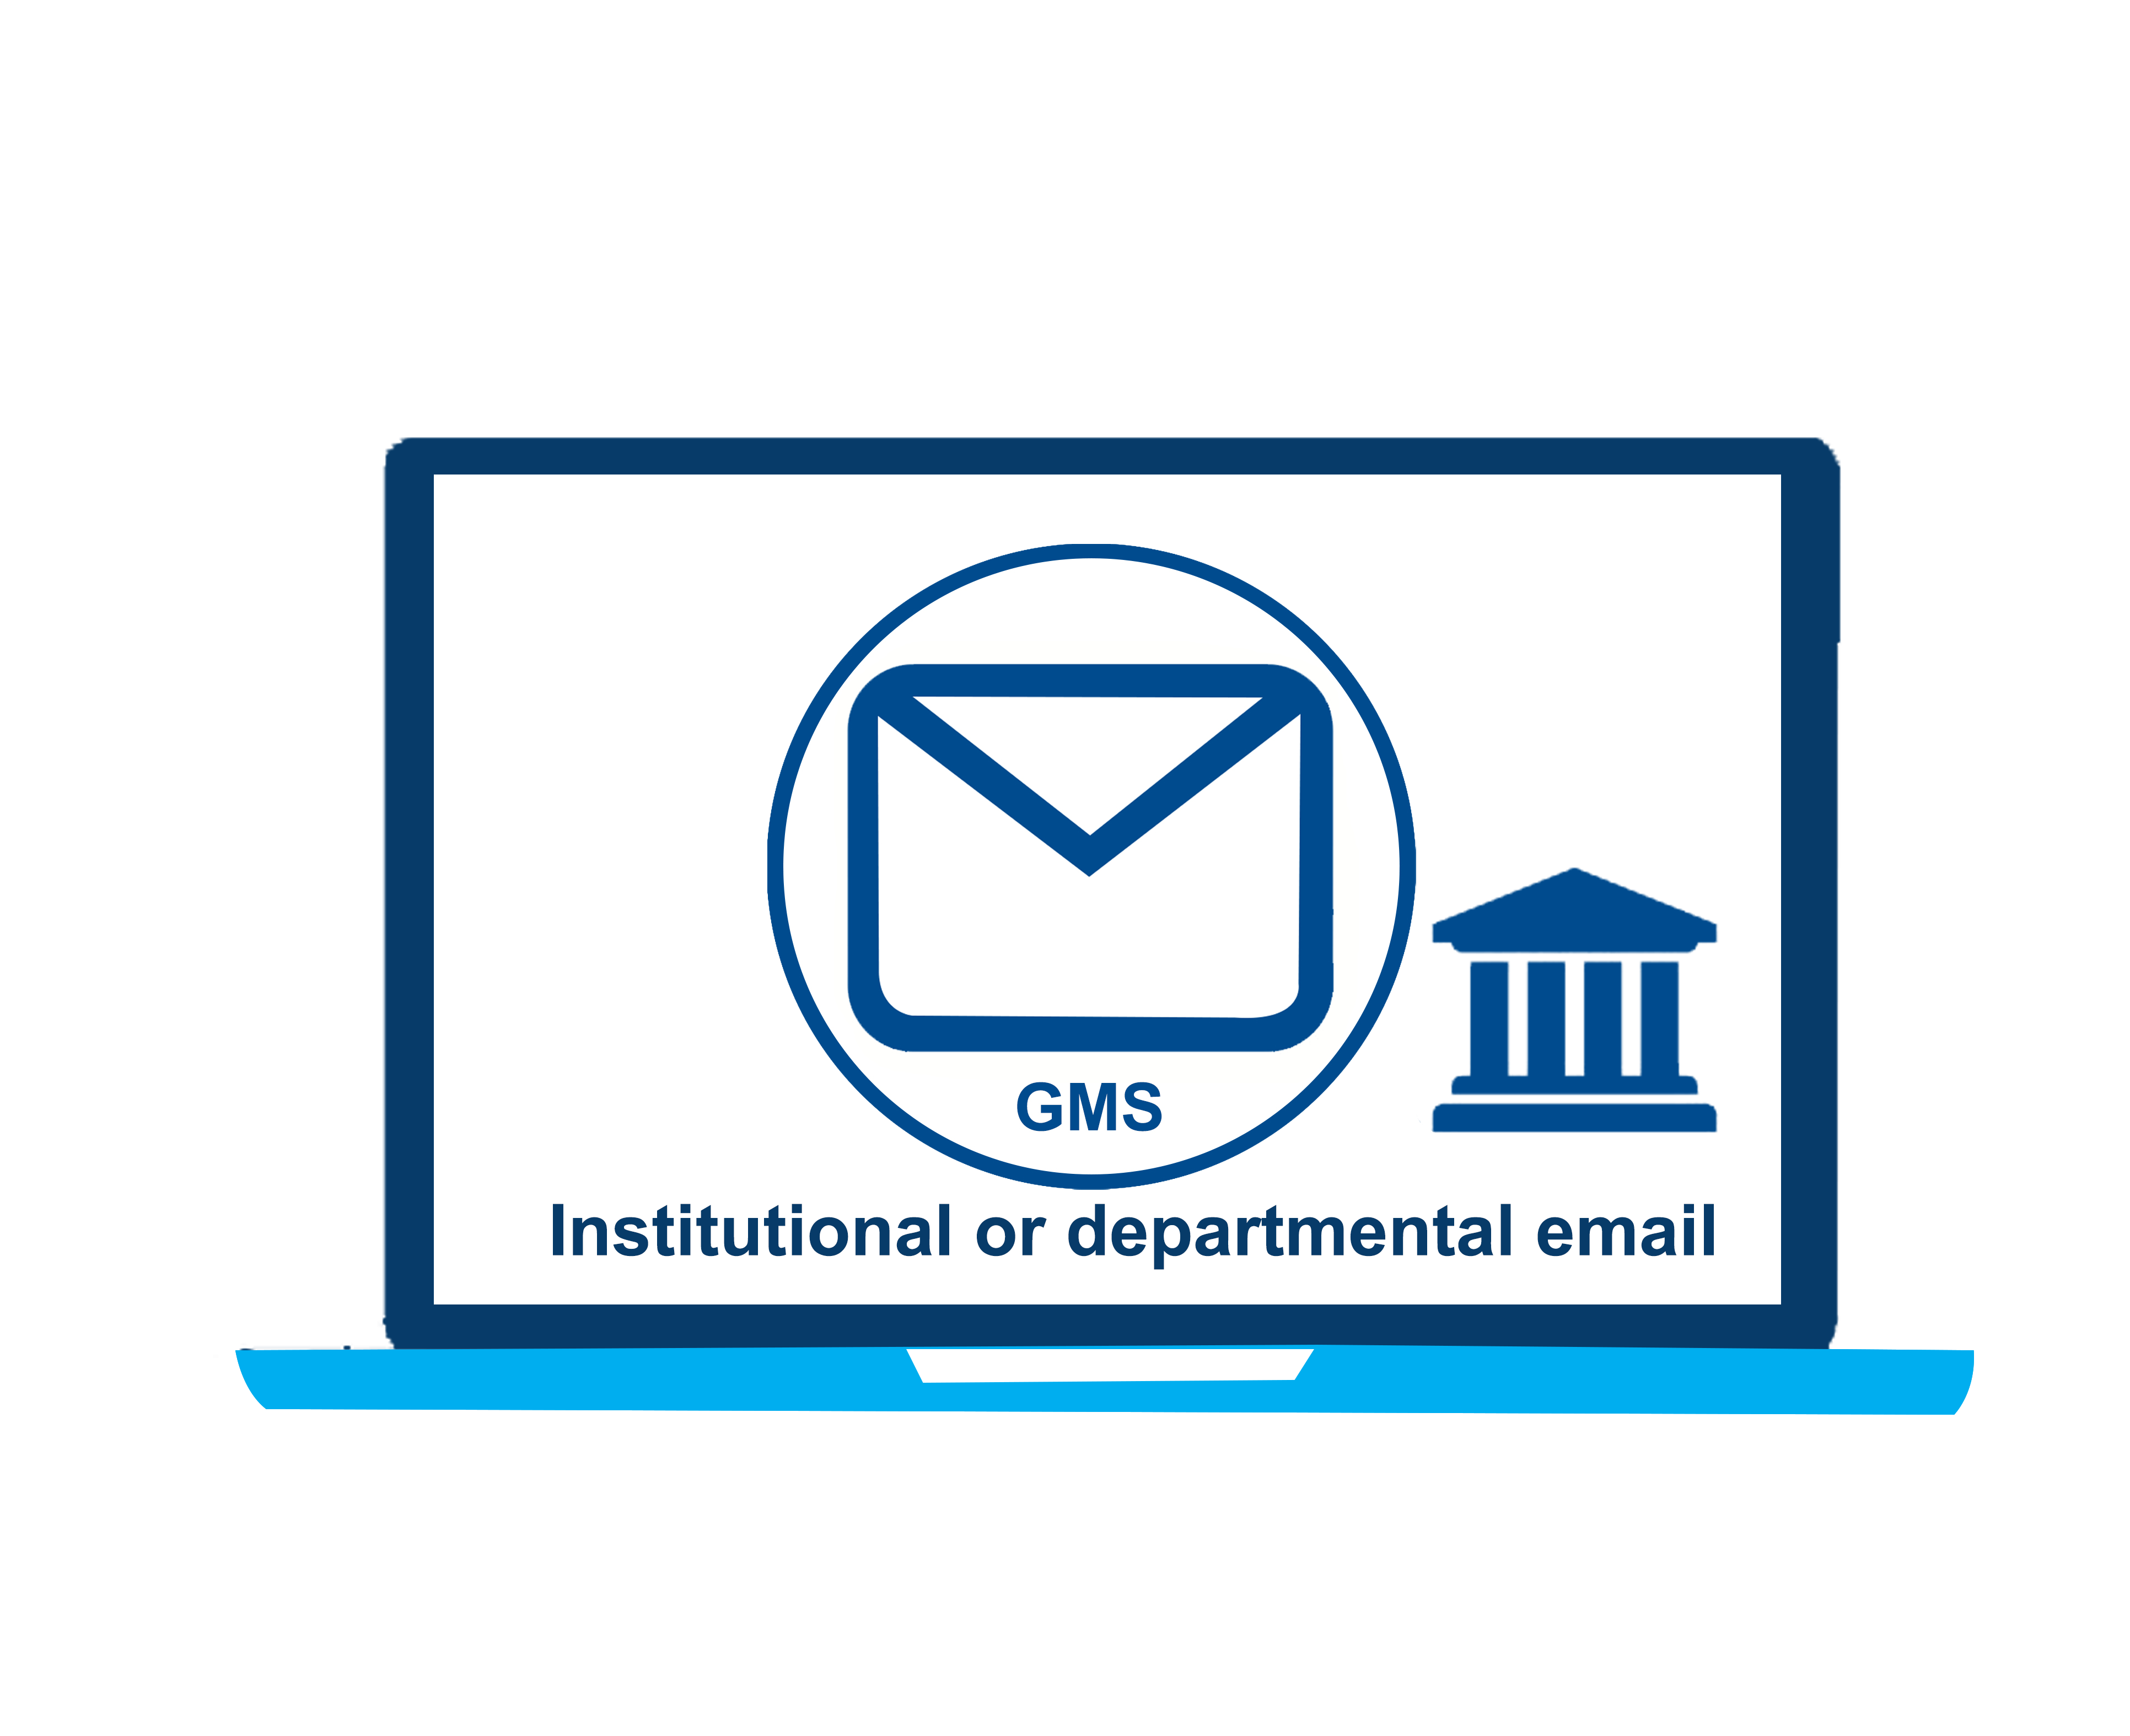 Institutional or departmental email accounts